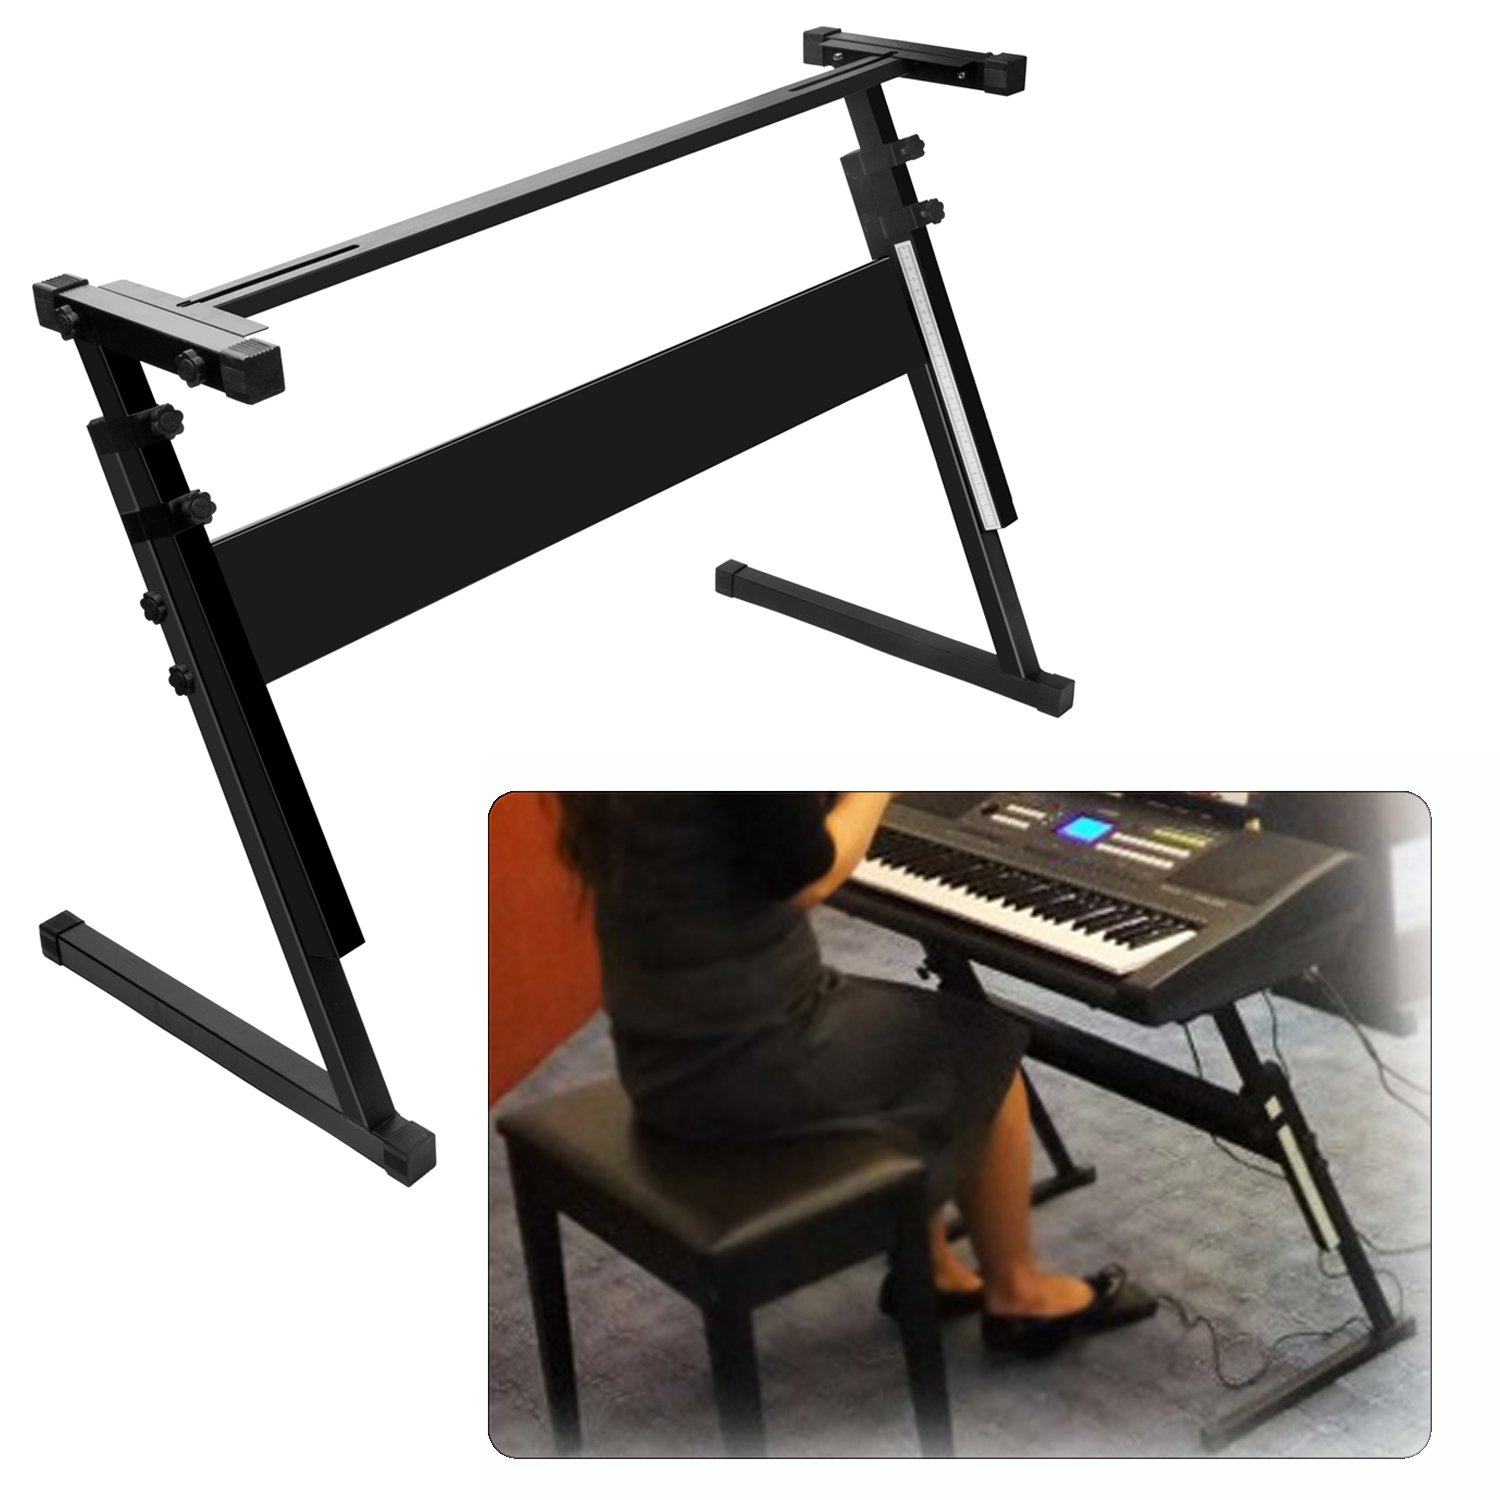 Luvay Keyboard Stand for 61 or 54 keys, Z-Style Folding, Height Adjustable, Heavy Duty (1-inch steel) Luvay000049